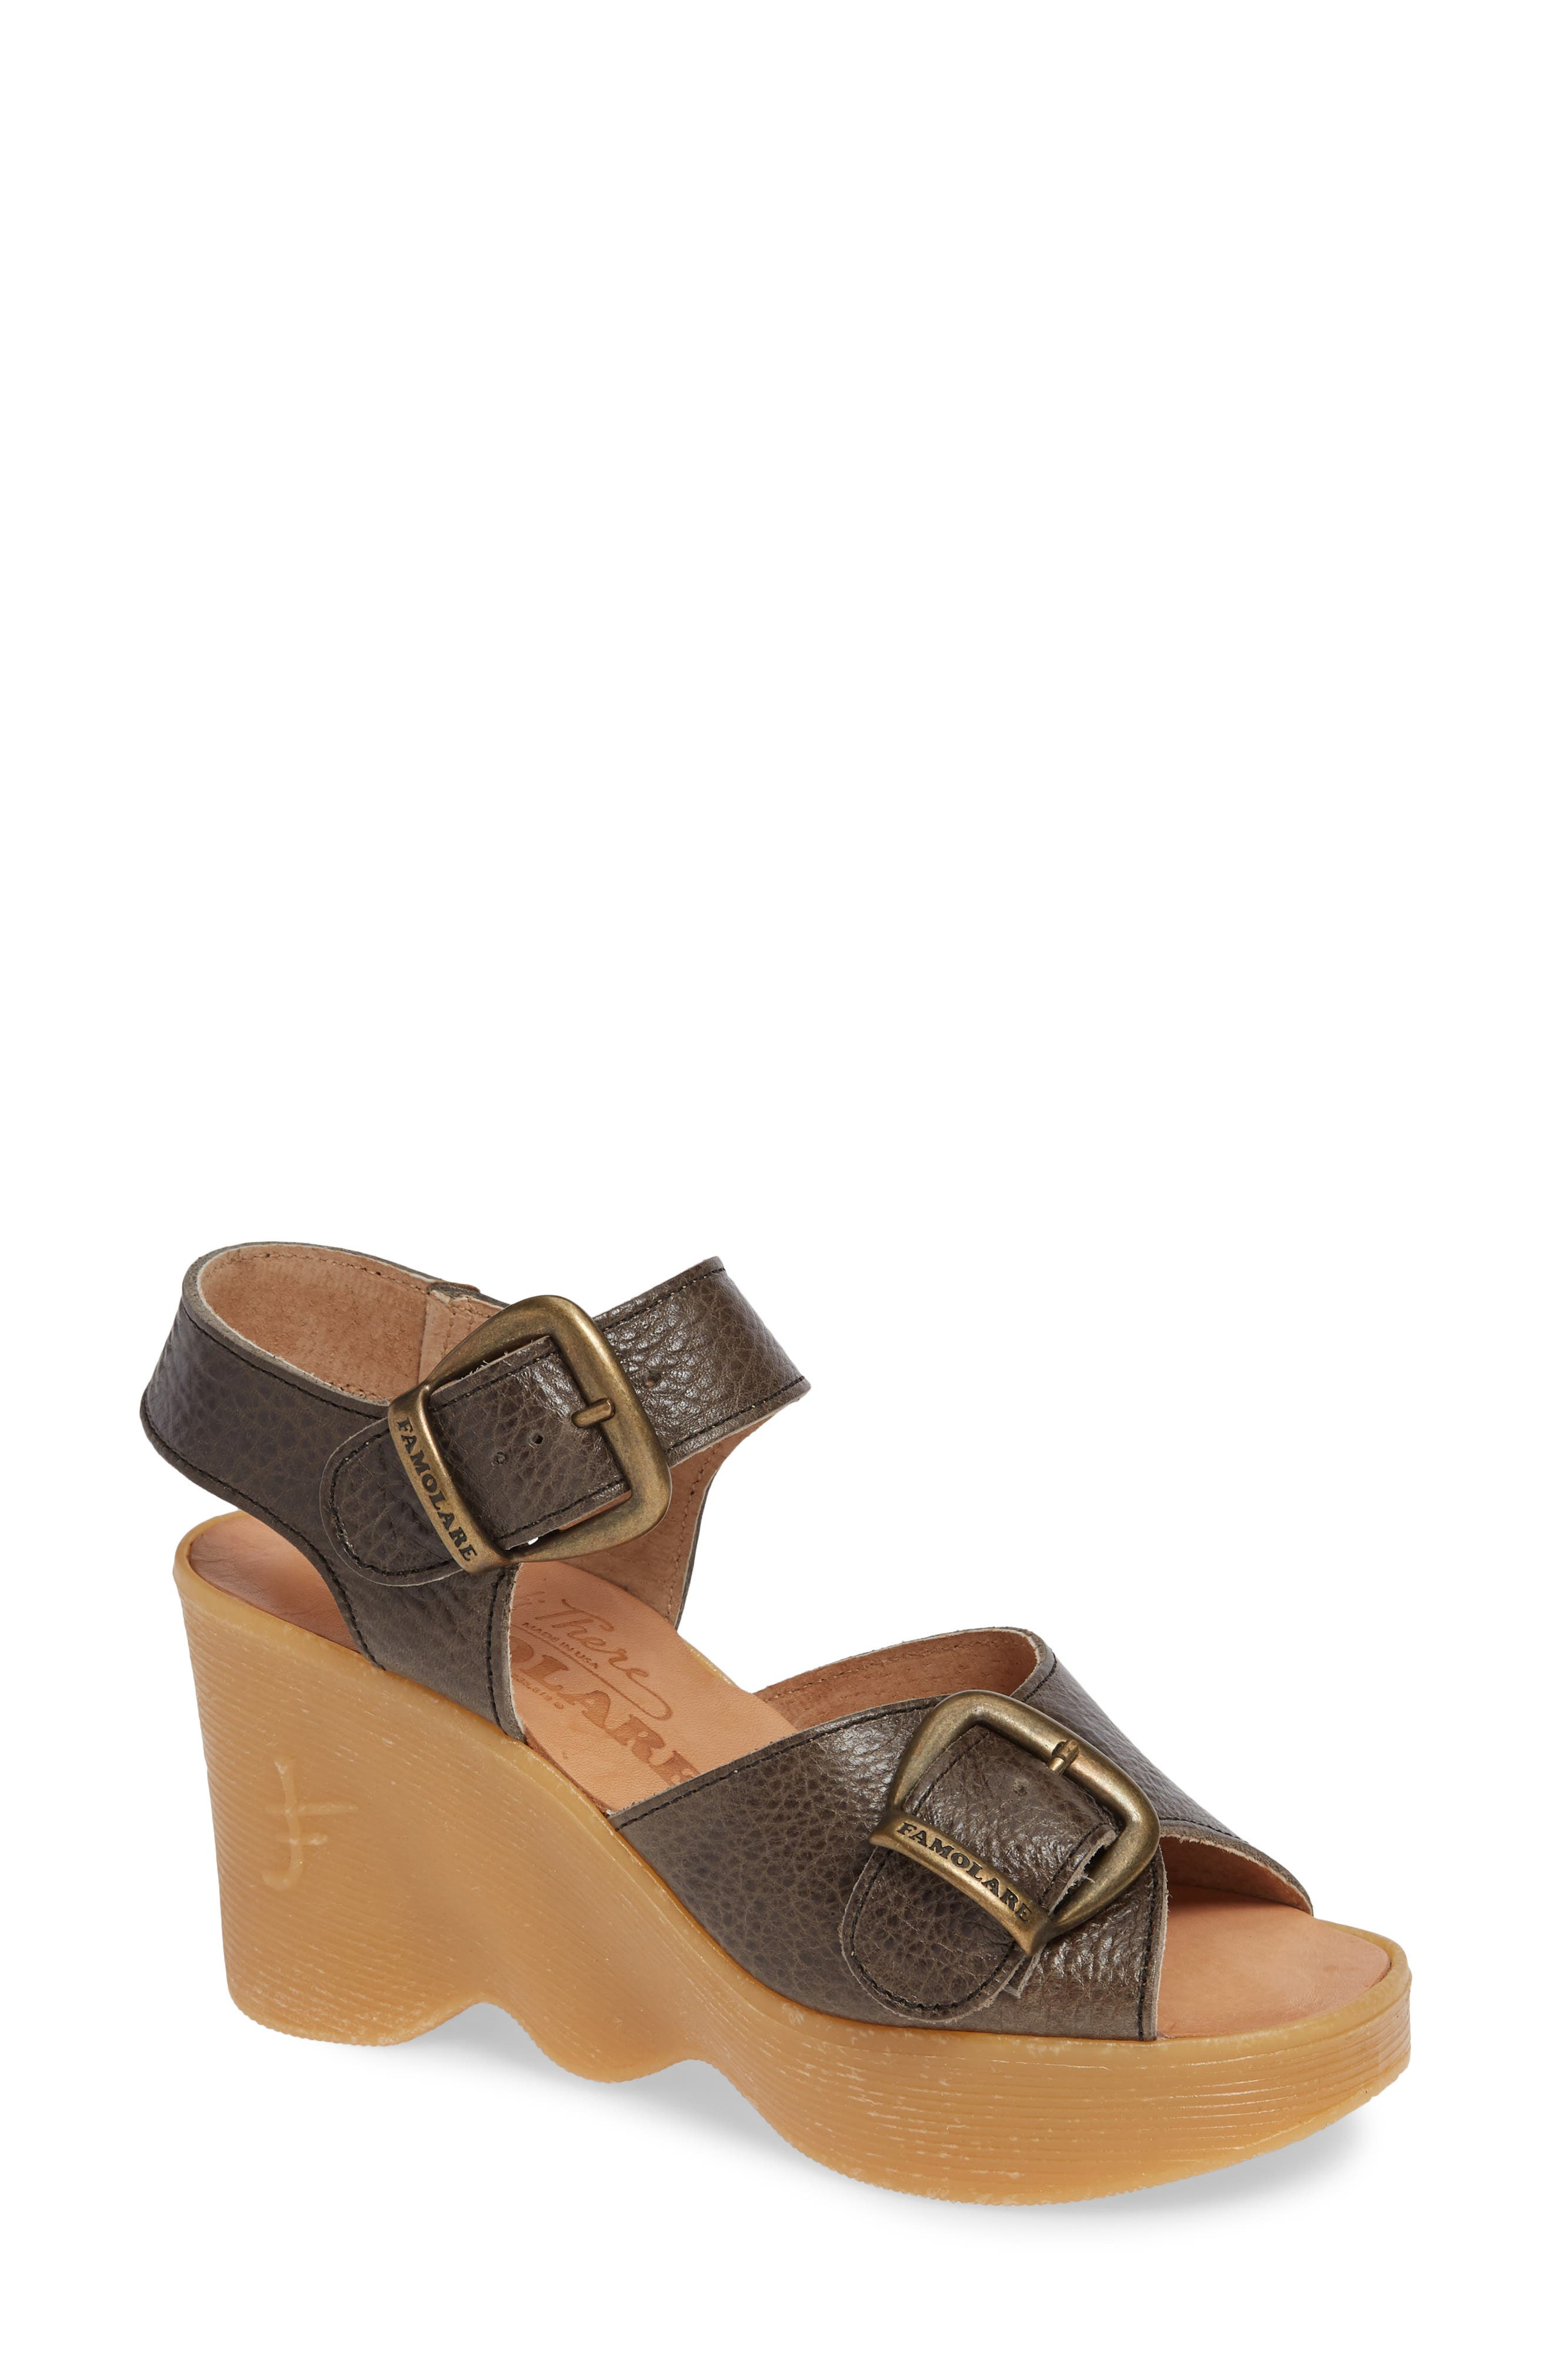 Double Vision Wedge Sandal,                         Main,                         color, STEEL LEATHER